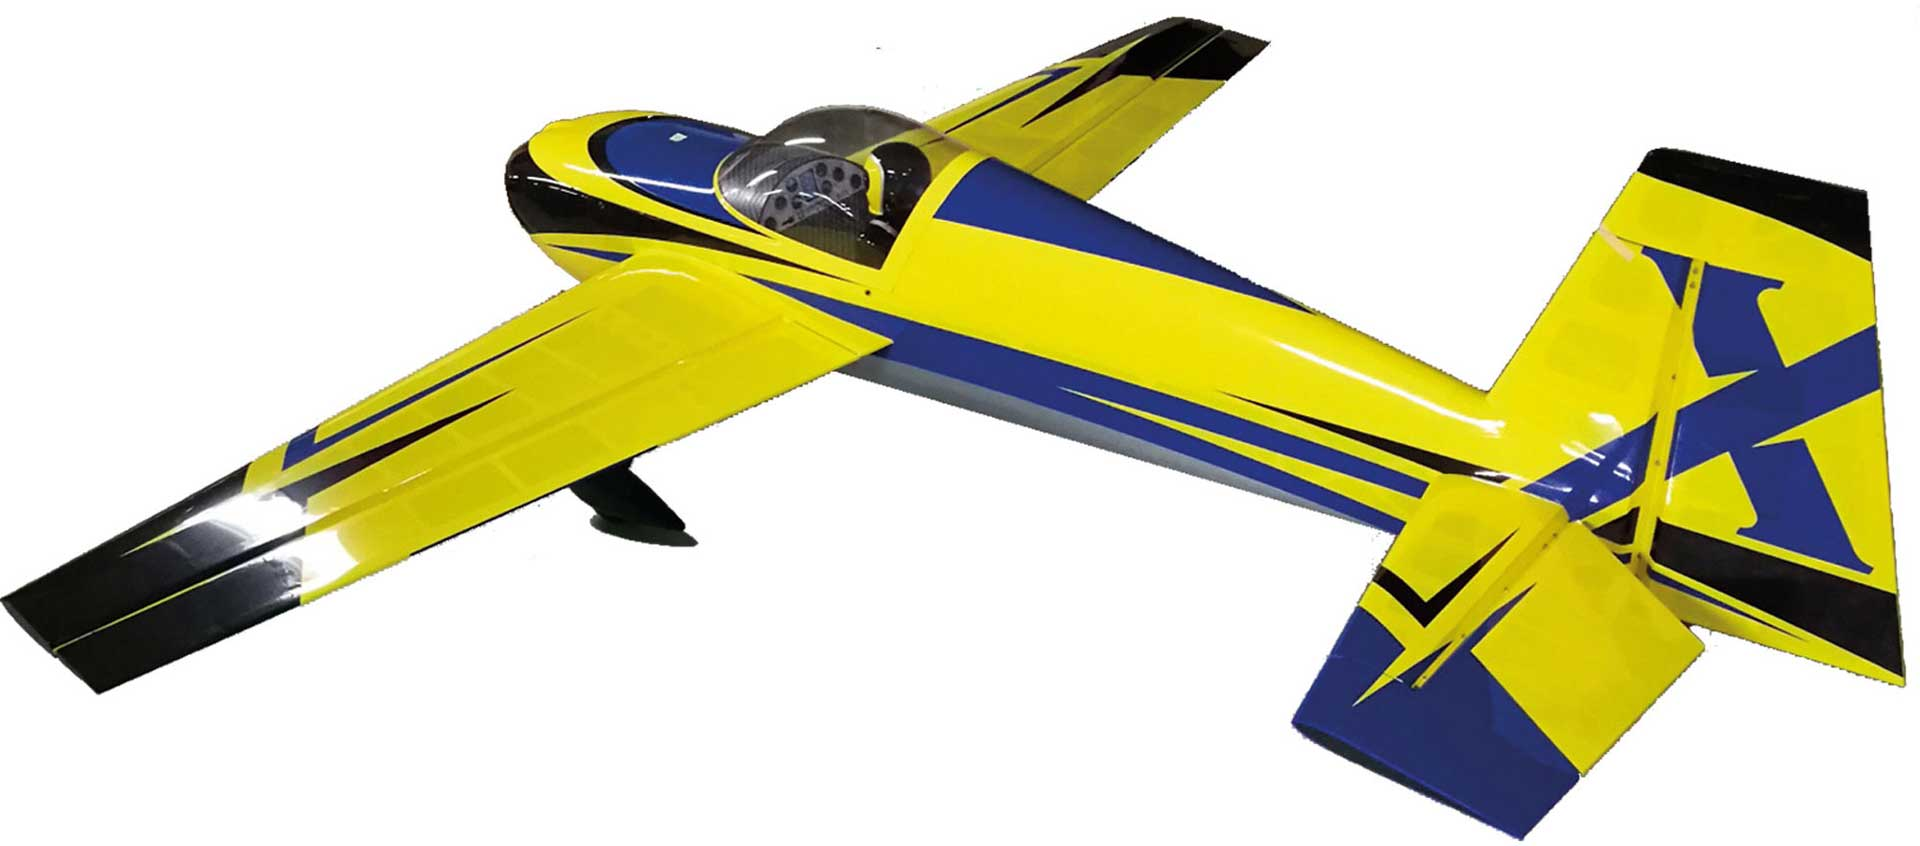 "EXTREMEFLIGHT-RC SLICK 580 105.5"" ARF YELLOW / BLUE"